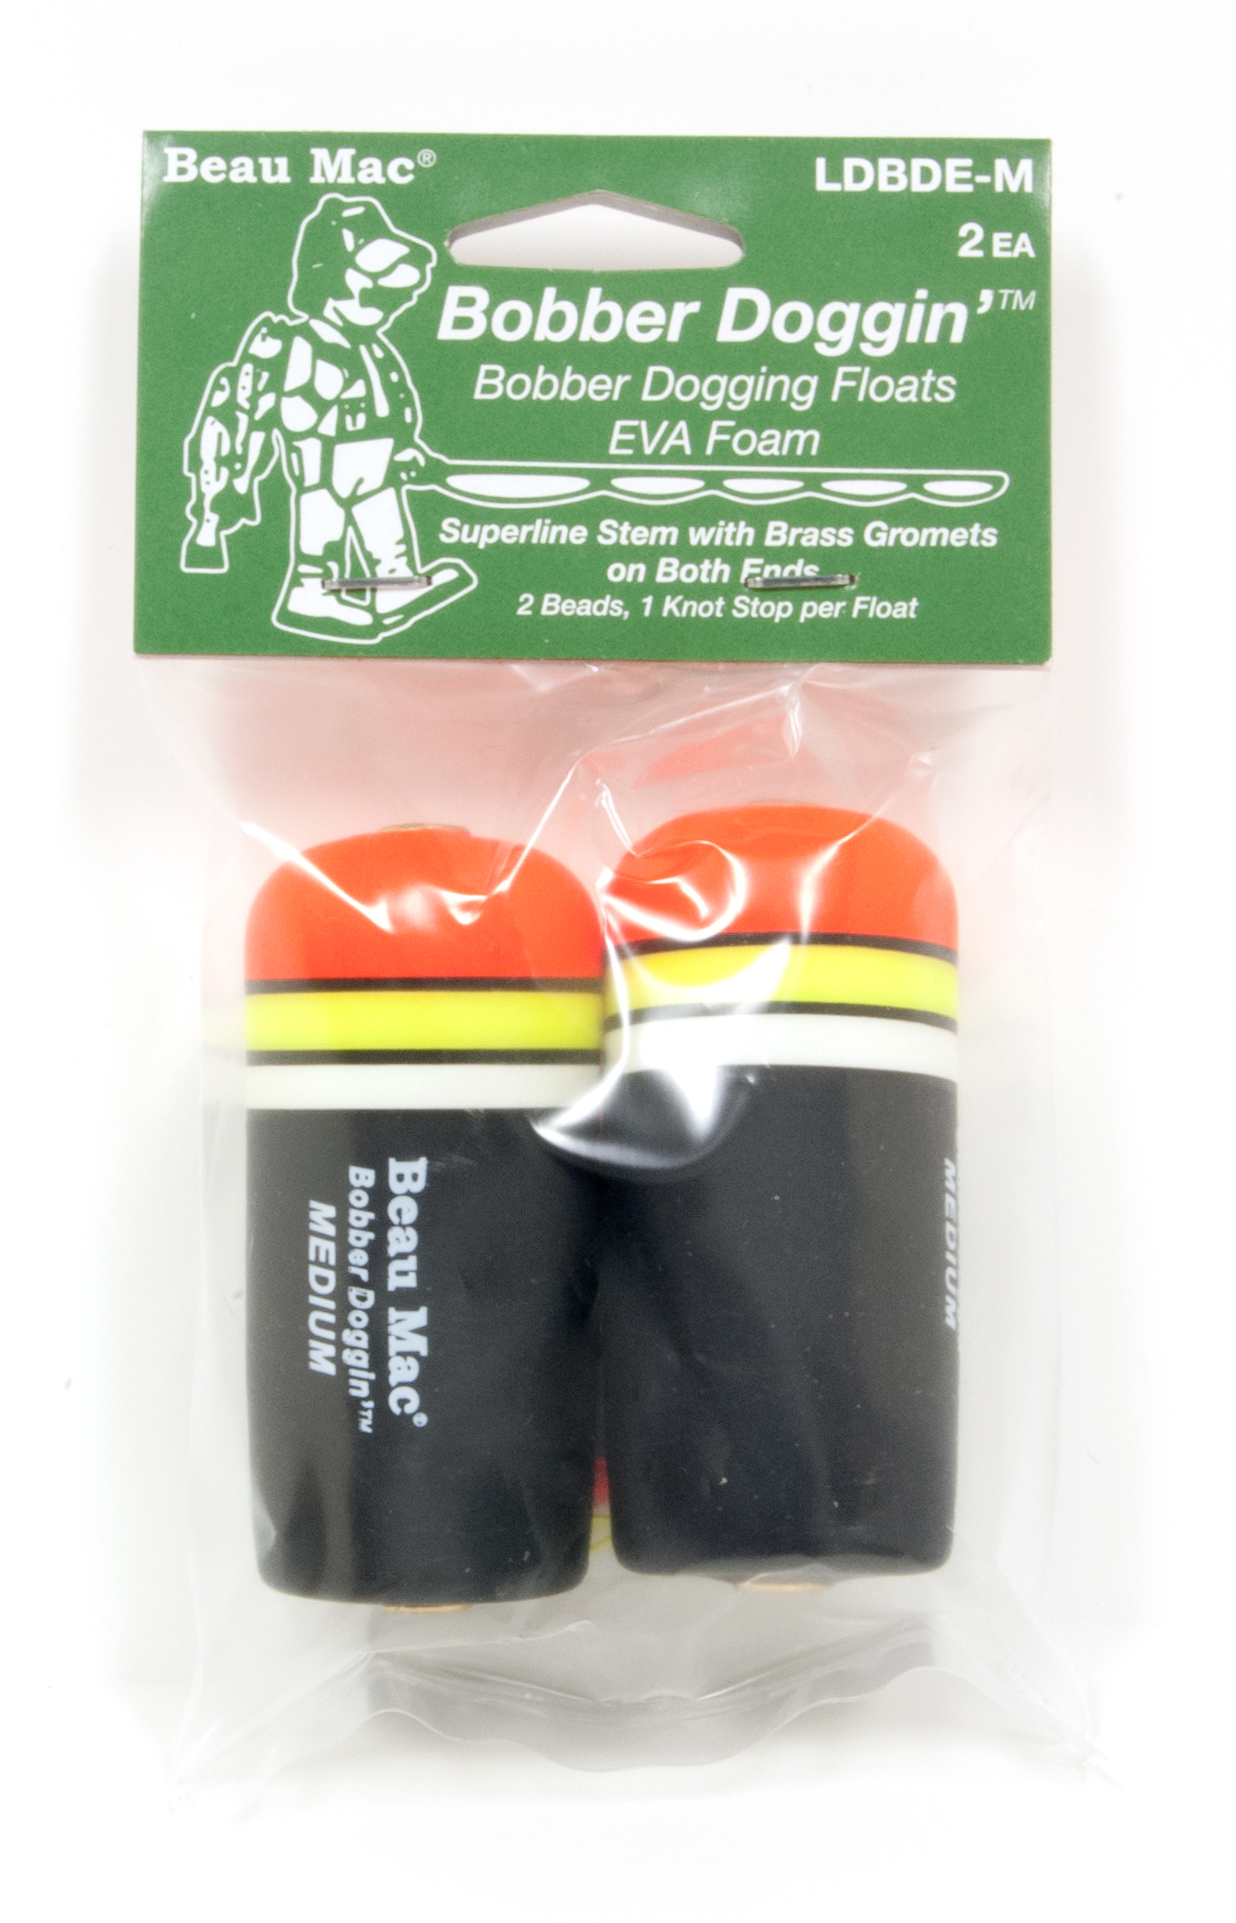 Beau Mac® Bobber Doggin'™ Floats